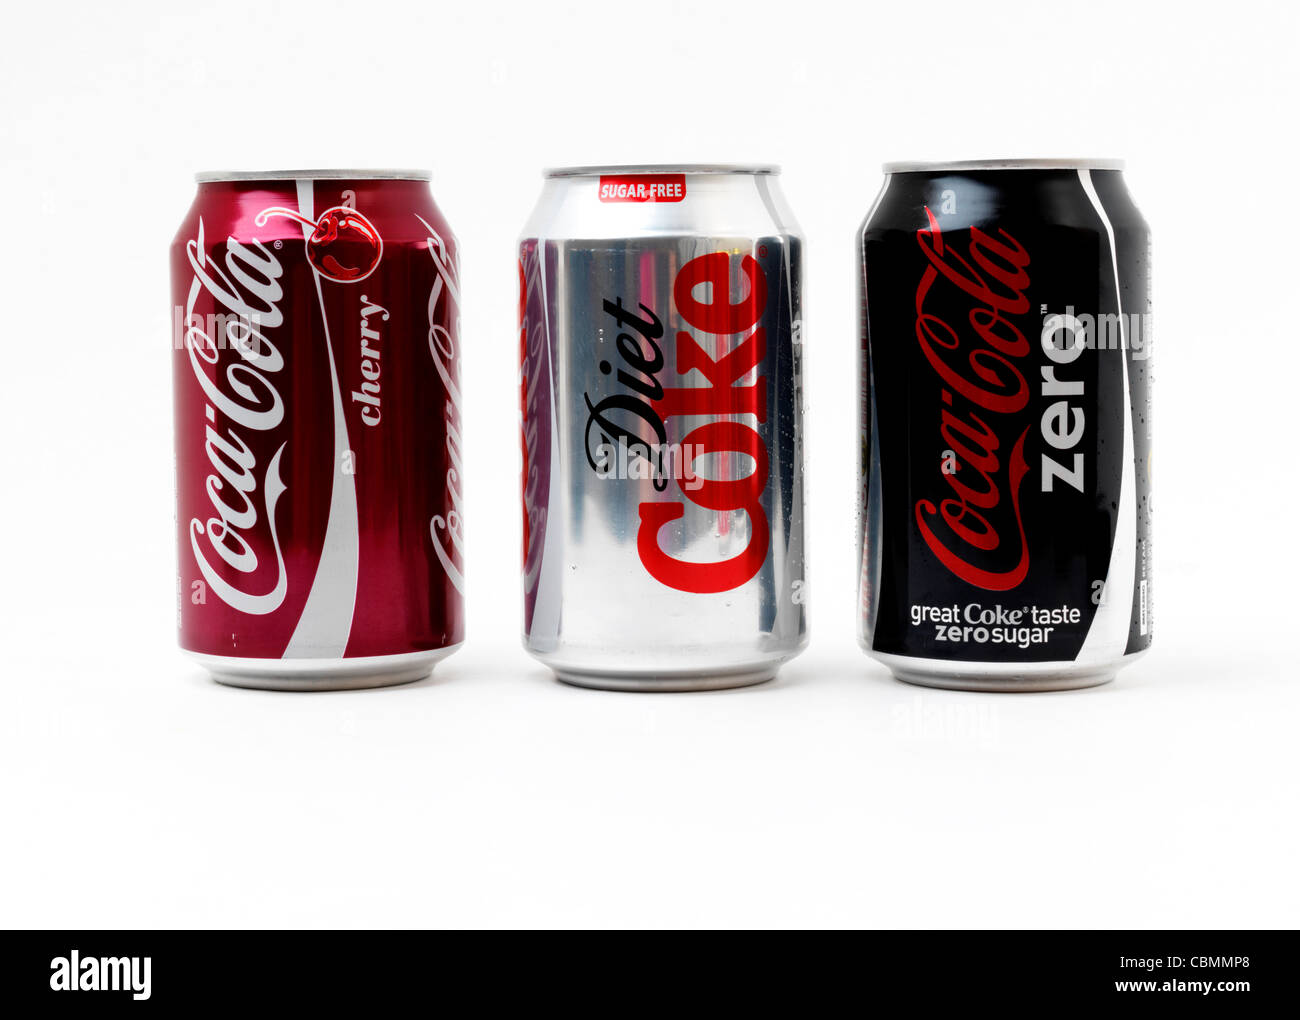 how to order coca cola products